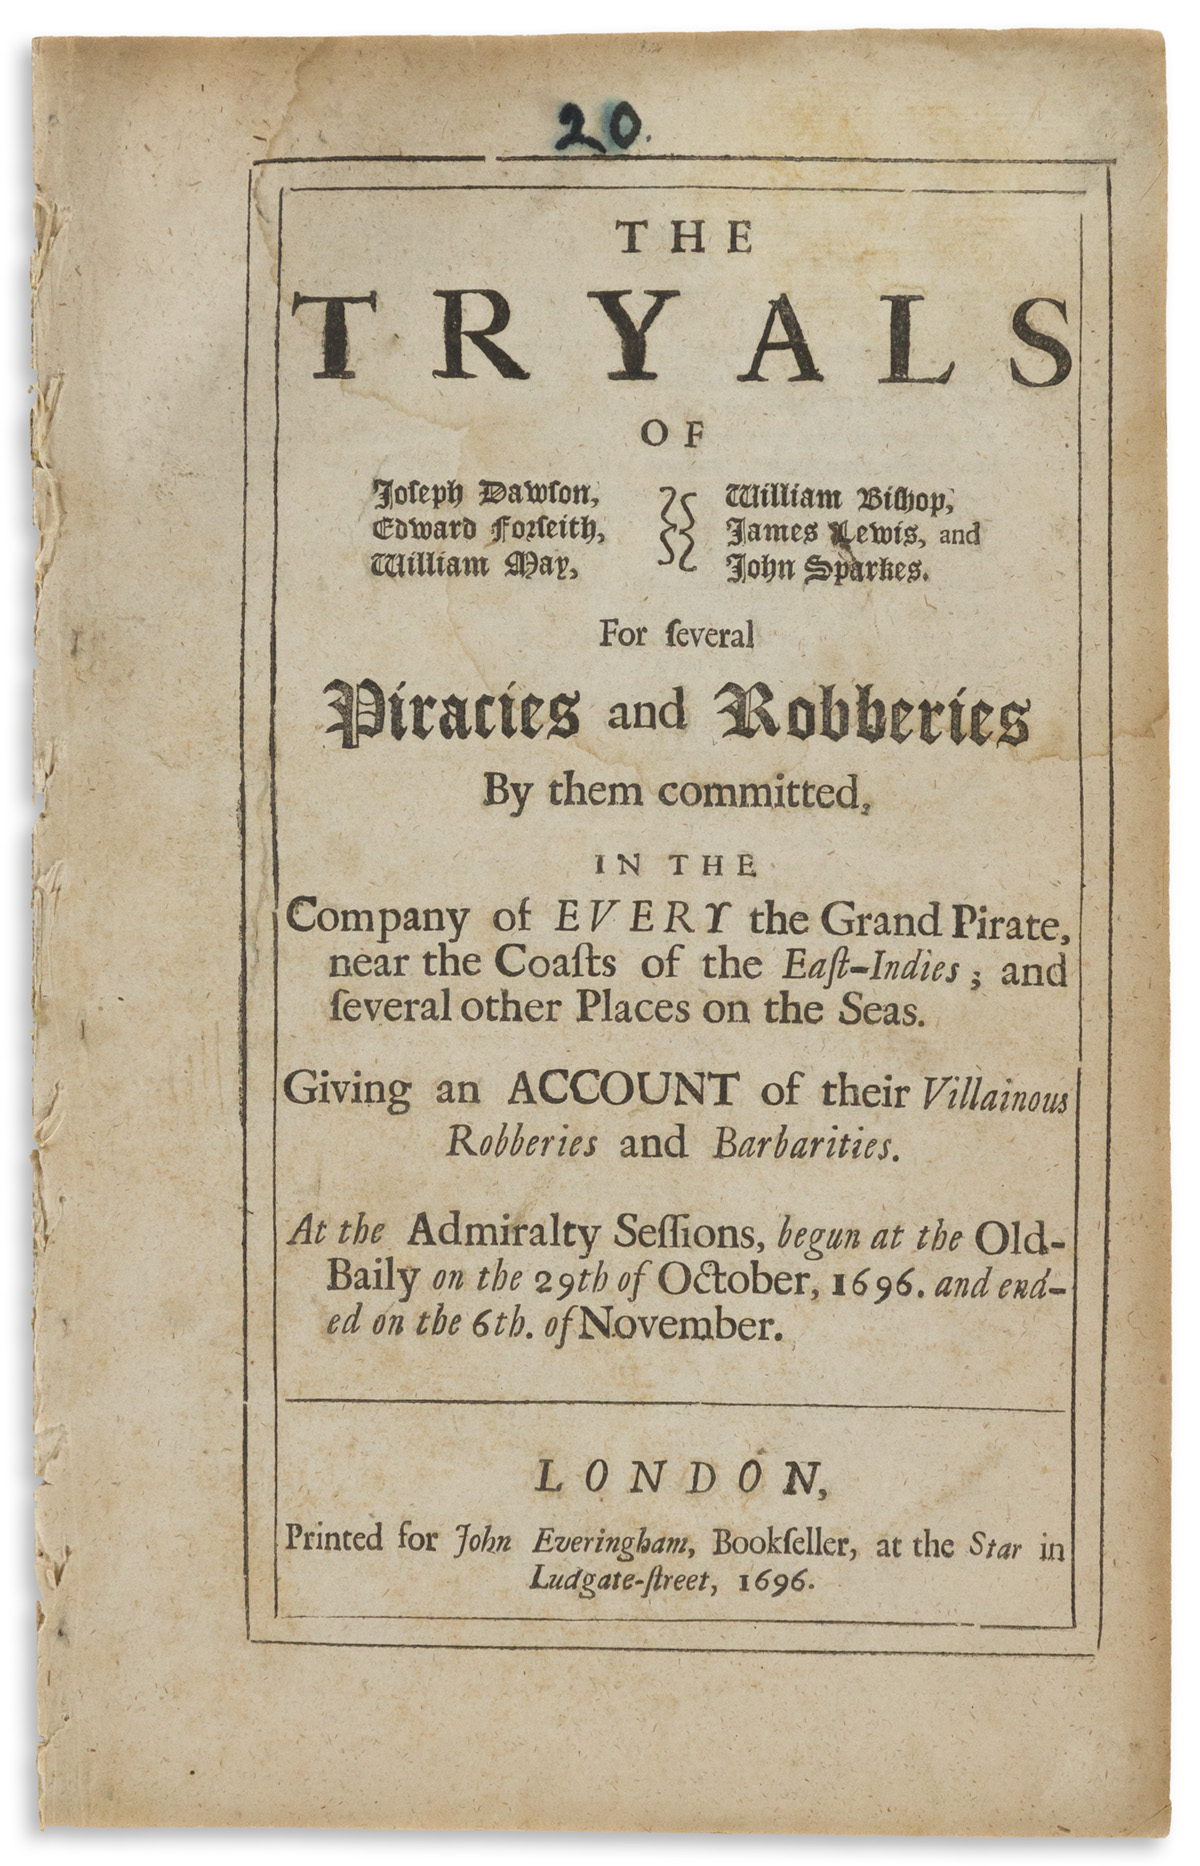 Trials, Piracy. The Tryals of Joseph Dawson, Edward Forseith, William May, William Bishop, James Lewis, and John Sparkes for Several Pi